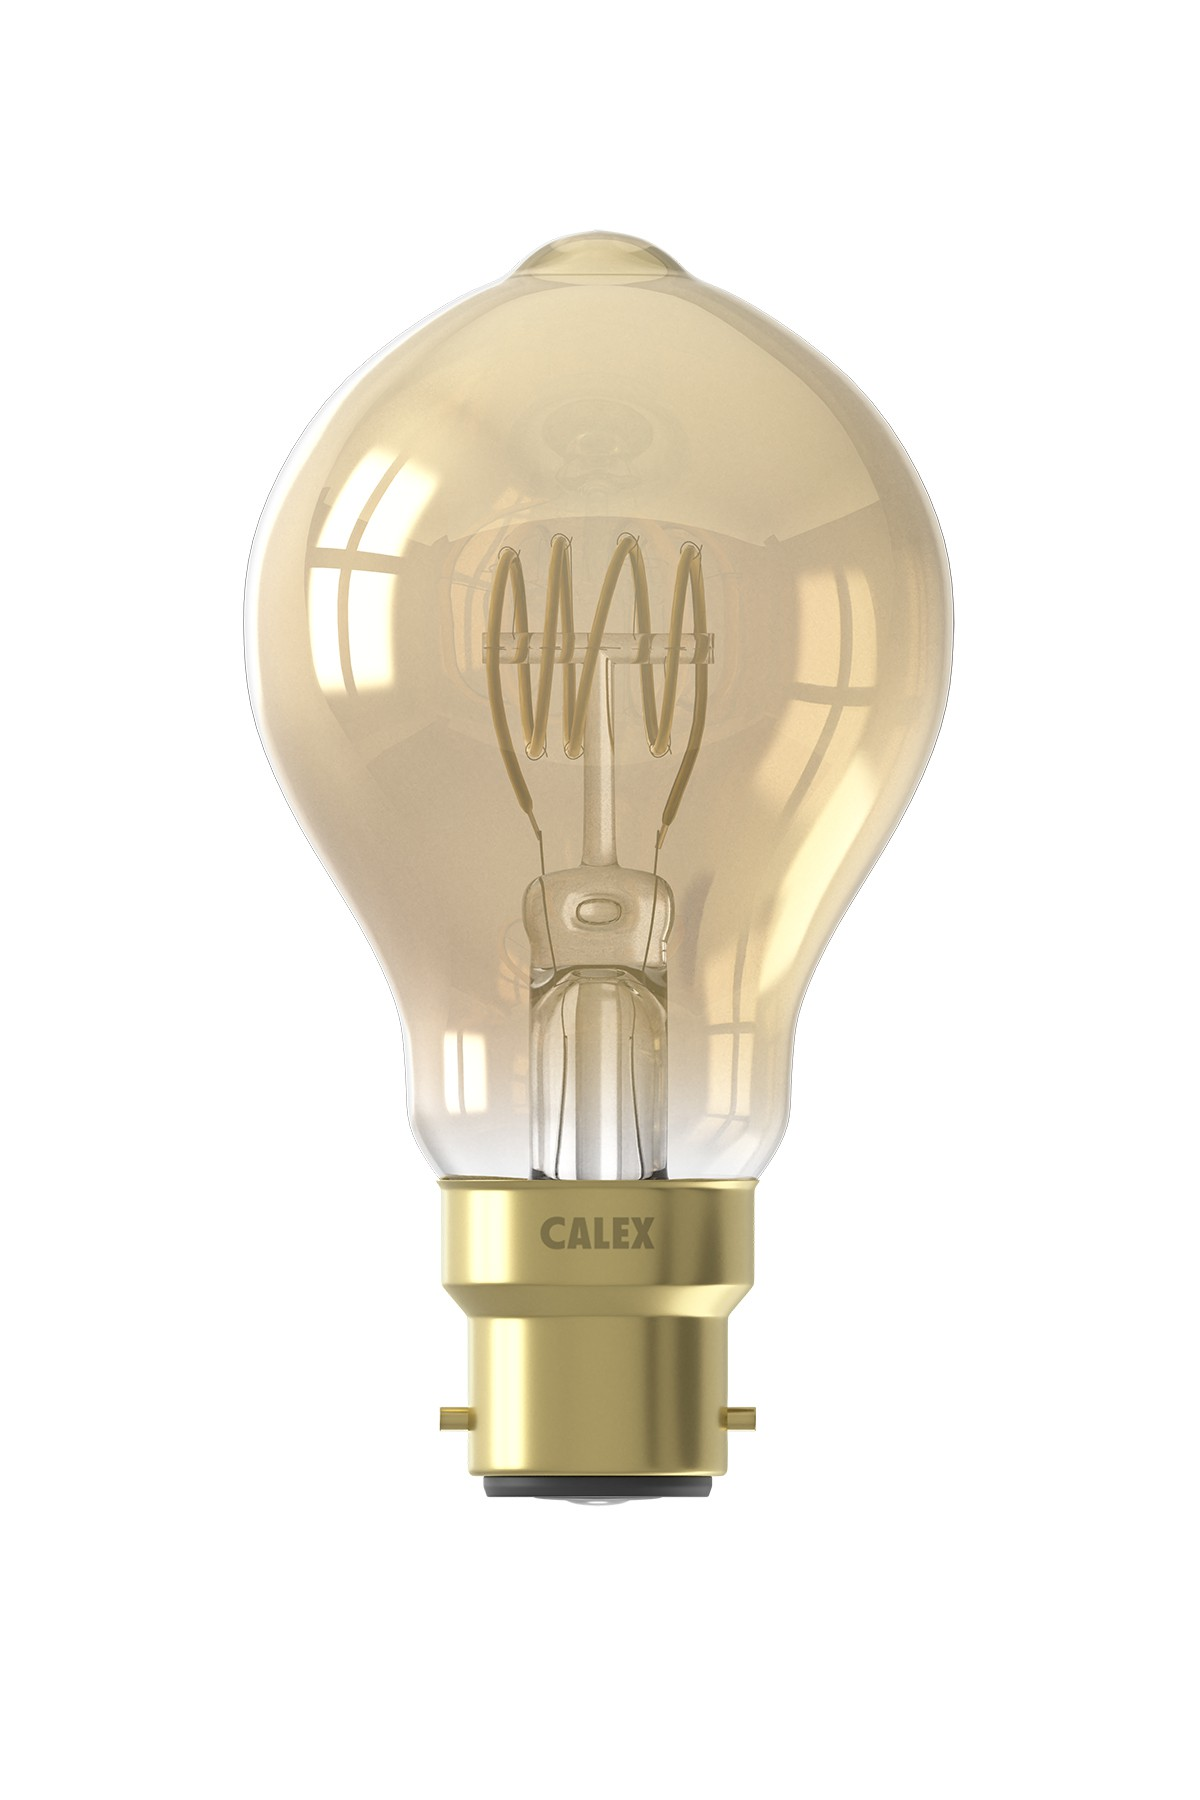 Calex LED Full Glass Flex Filament GLS-lamp 220-240V 4W 200lm B22 A60DR, Gold 2100K Dimmable